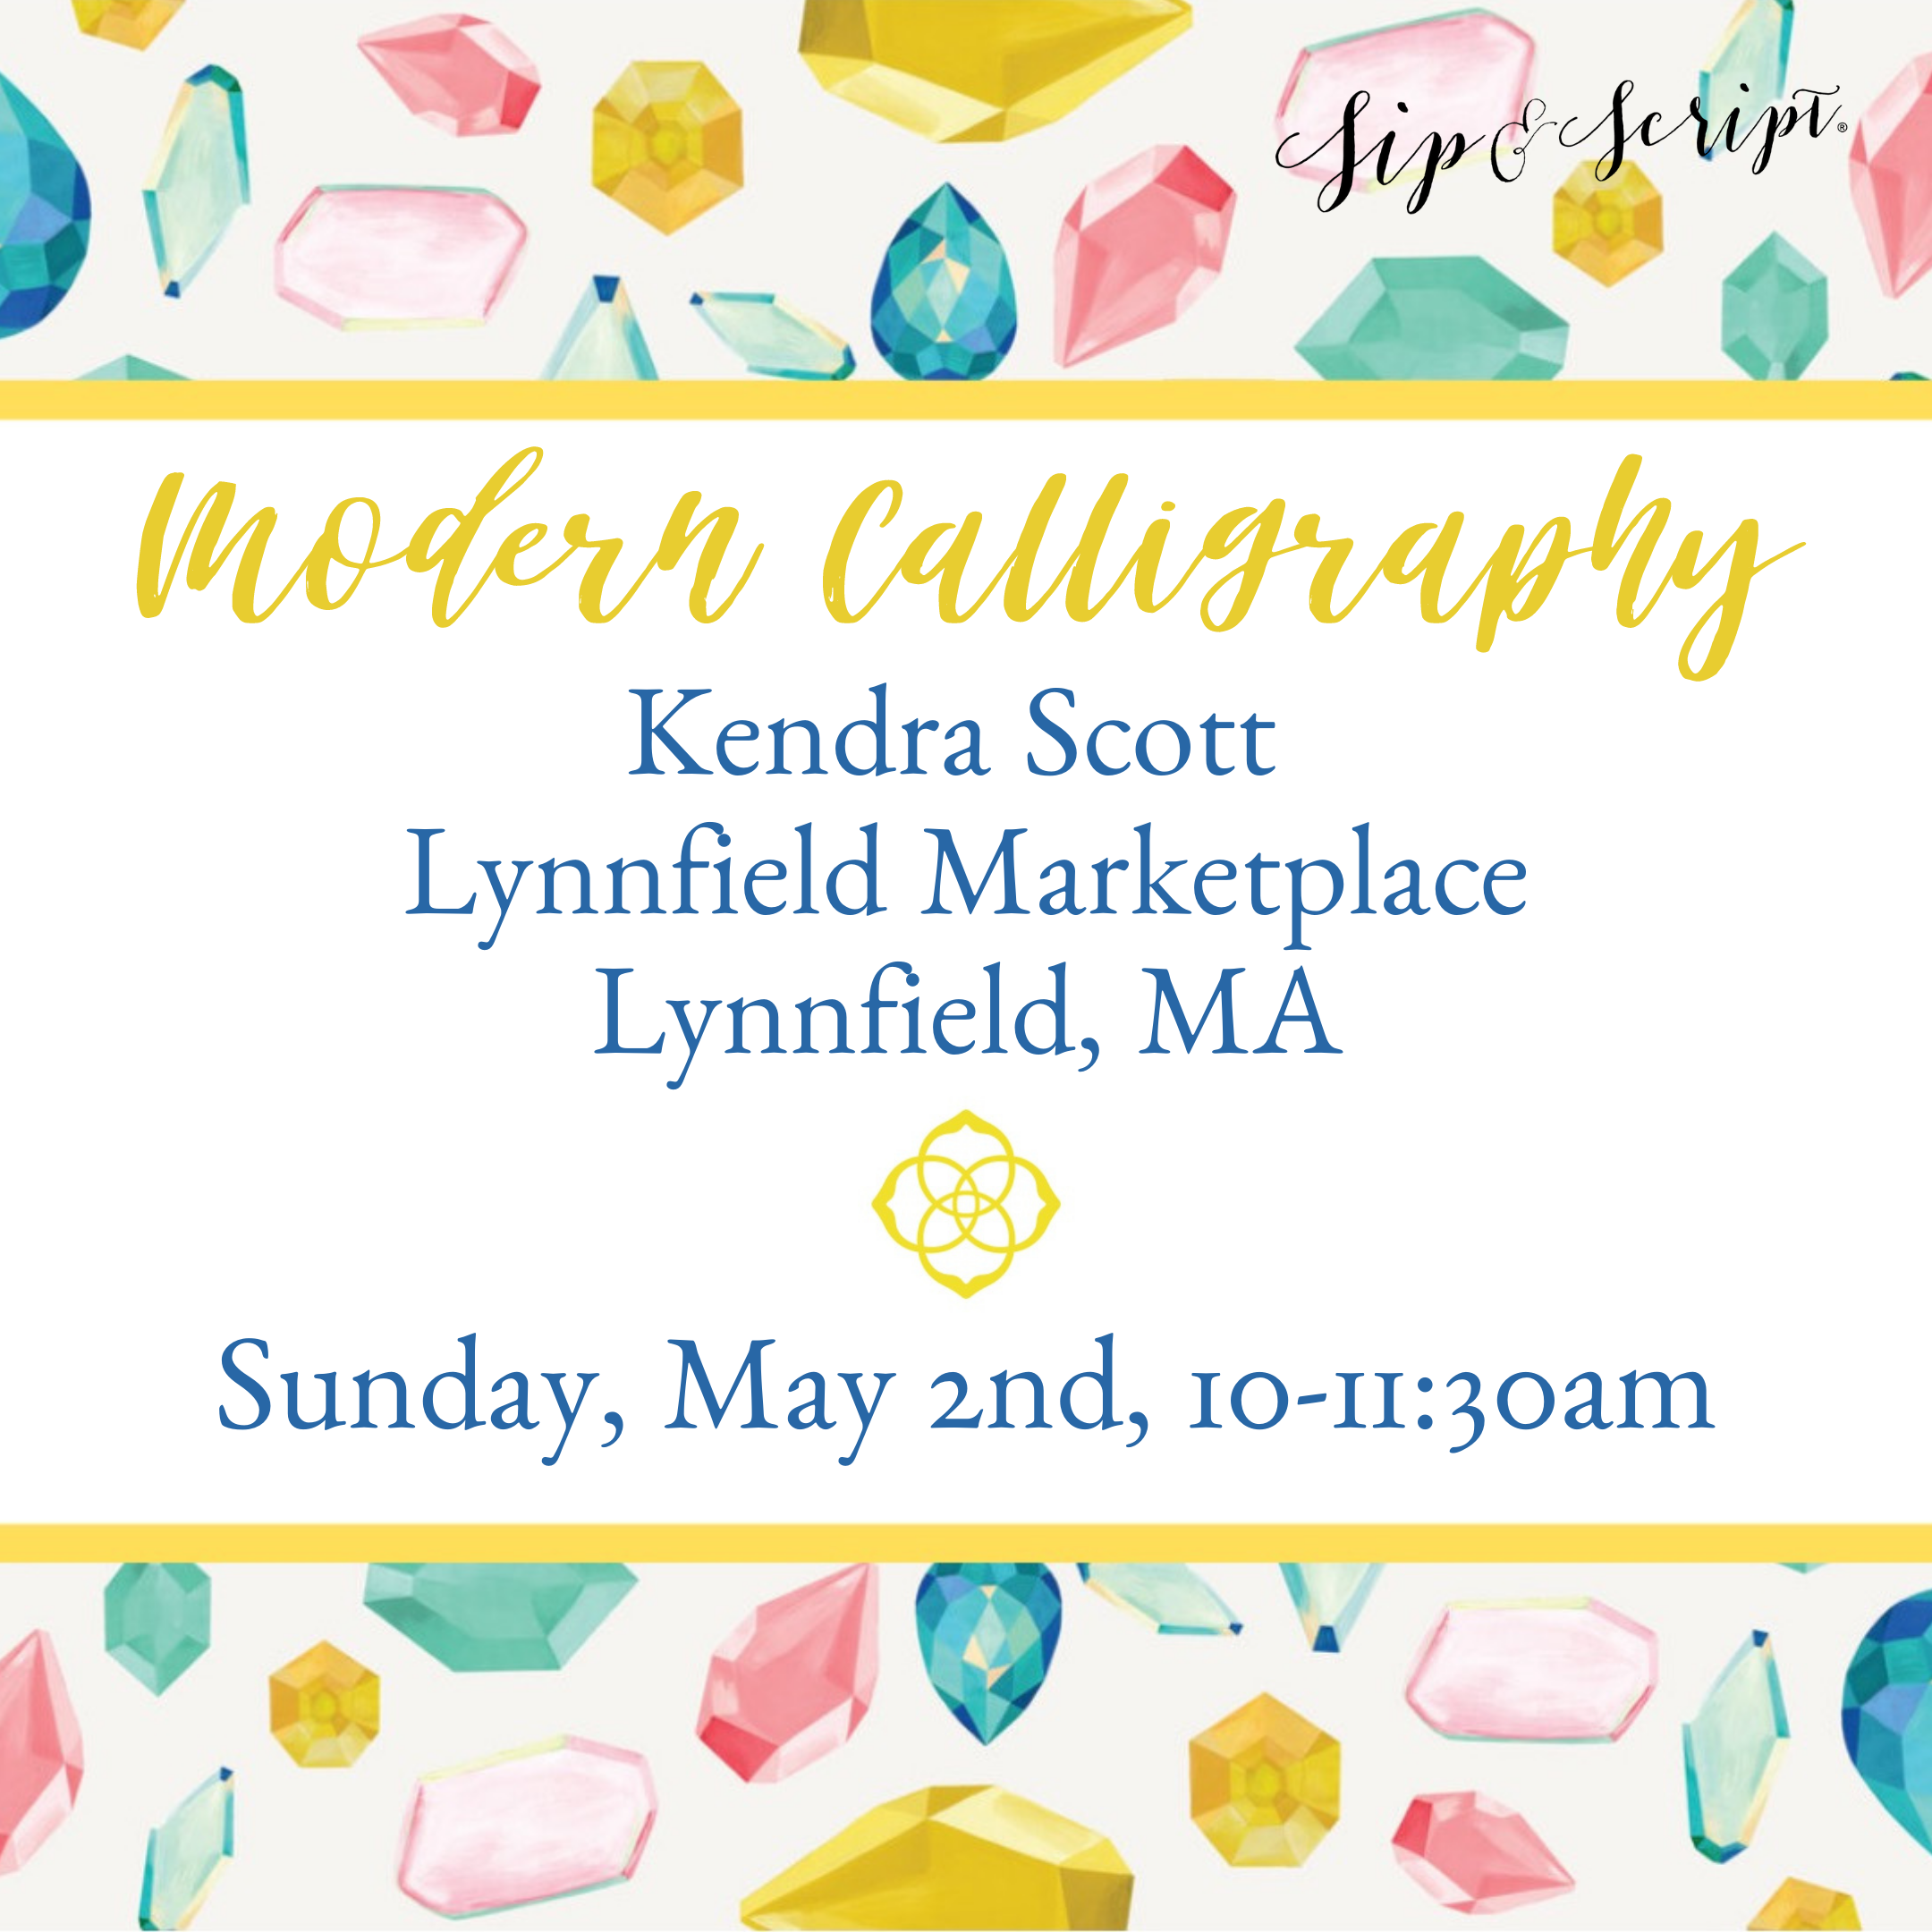 calligraphy class boston Kendra Scott